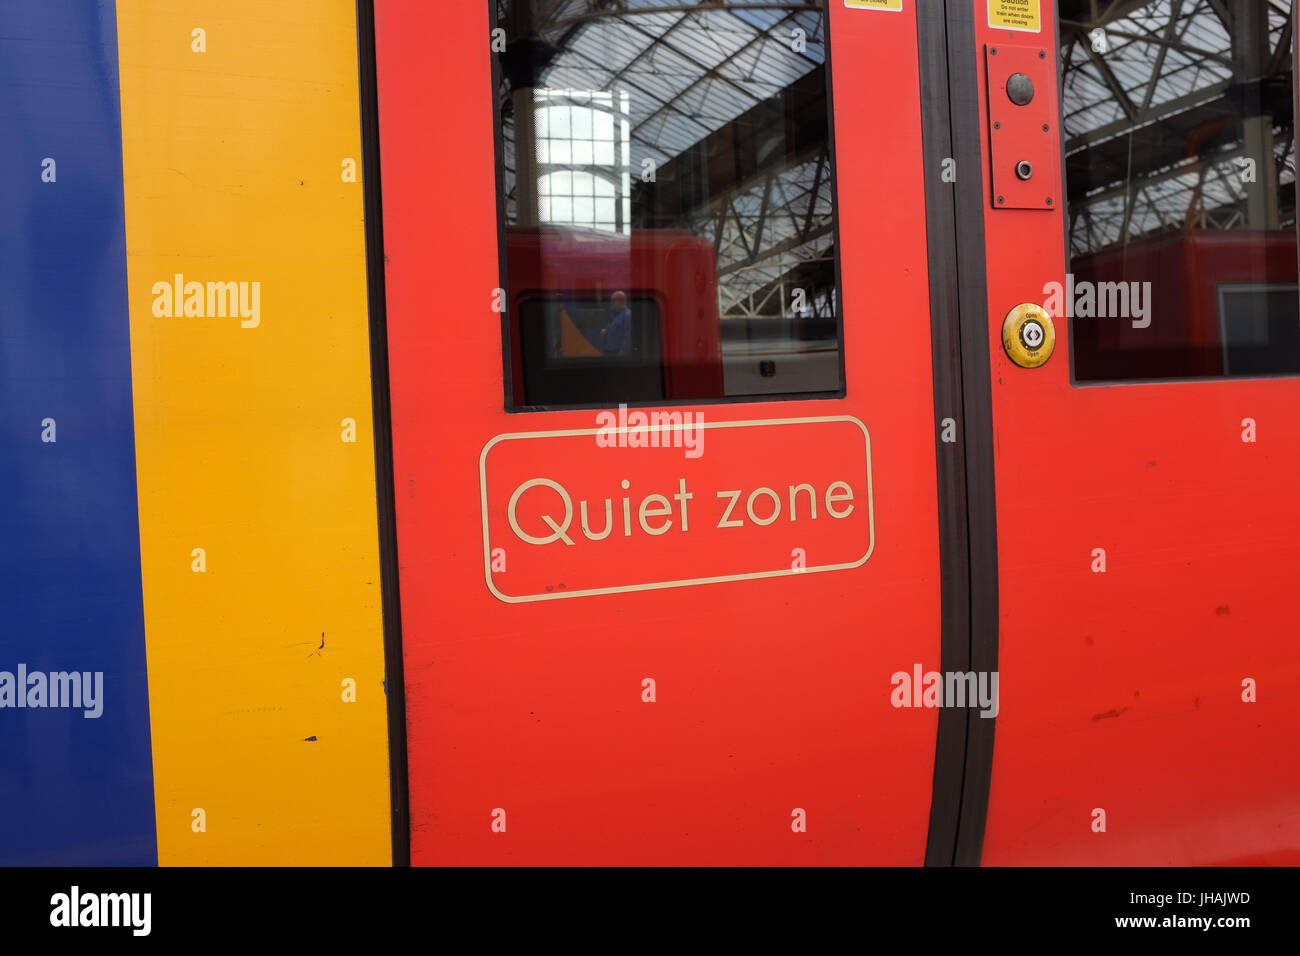 'Quiet zone' on the doors of a South West Trains carriage. - Stock Image